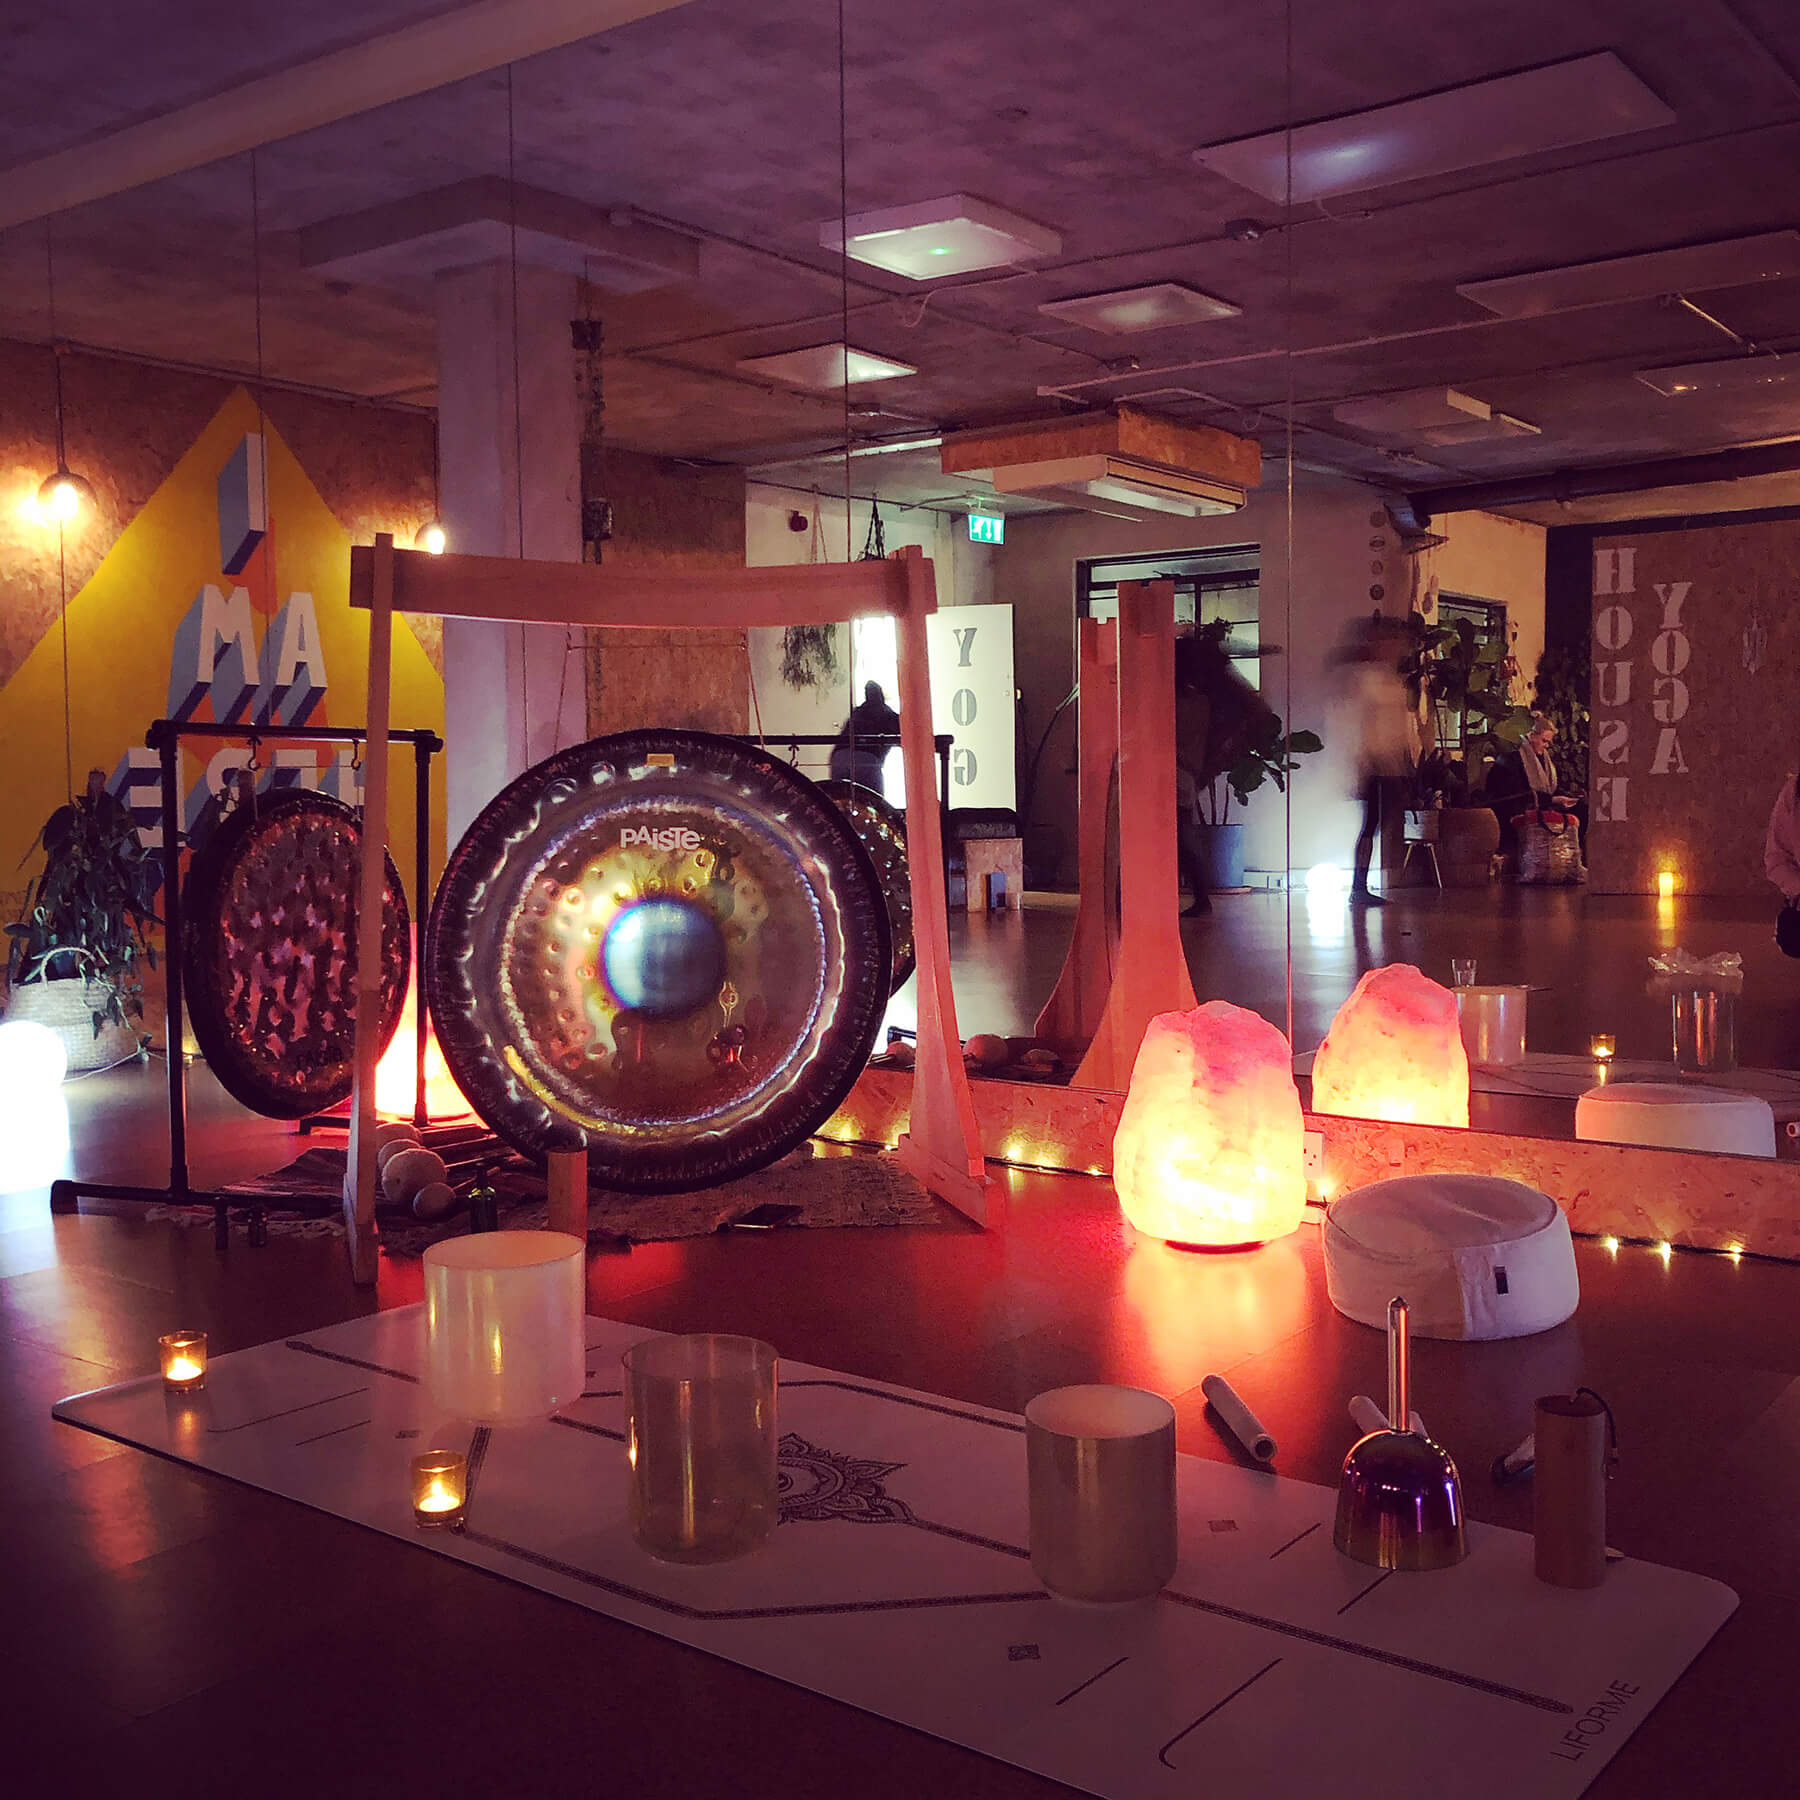 Back in the Studio | Gong Bath with Junior Valentine - Workshop at Yoga House, London - Catford and Lee